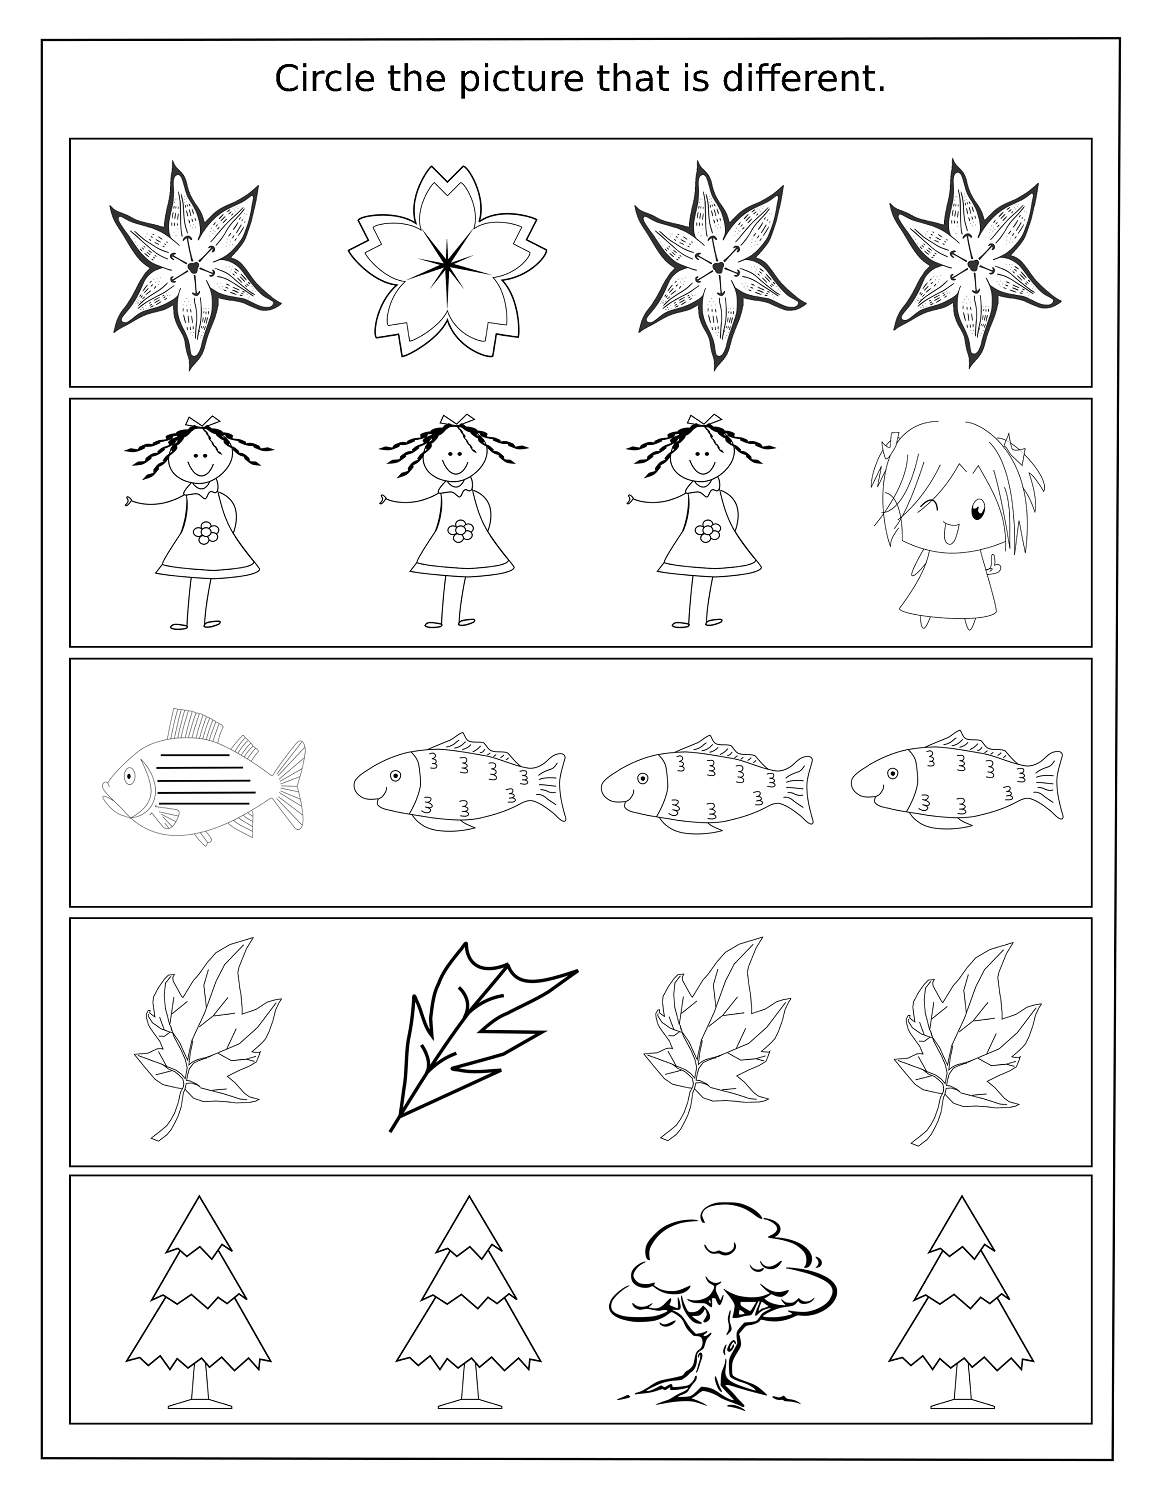 Simple Same and Different Worksheets – Same Different Worksheets